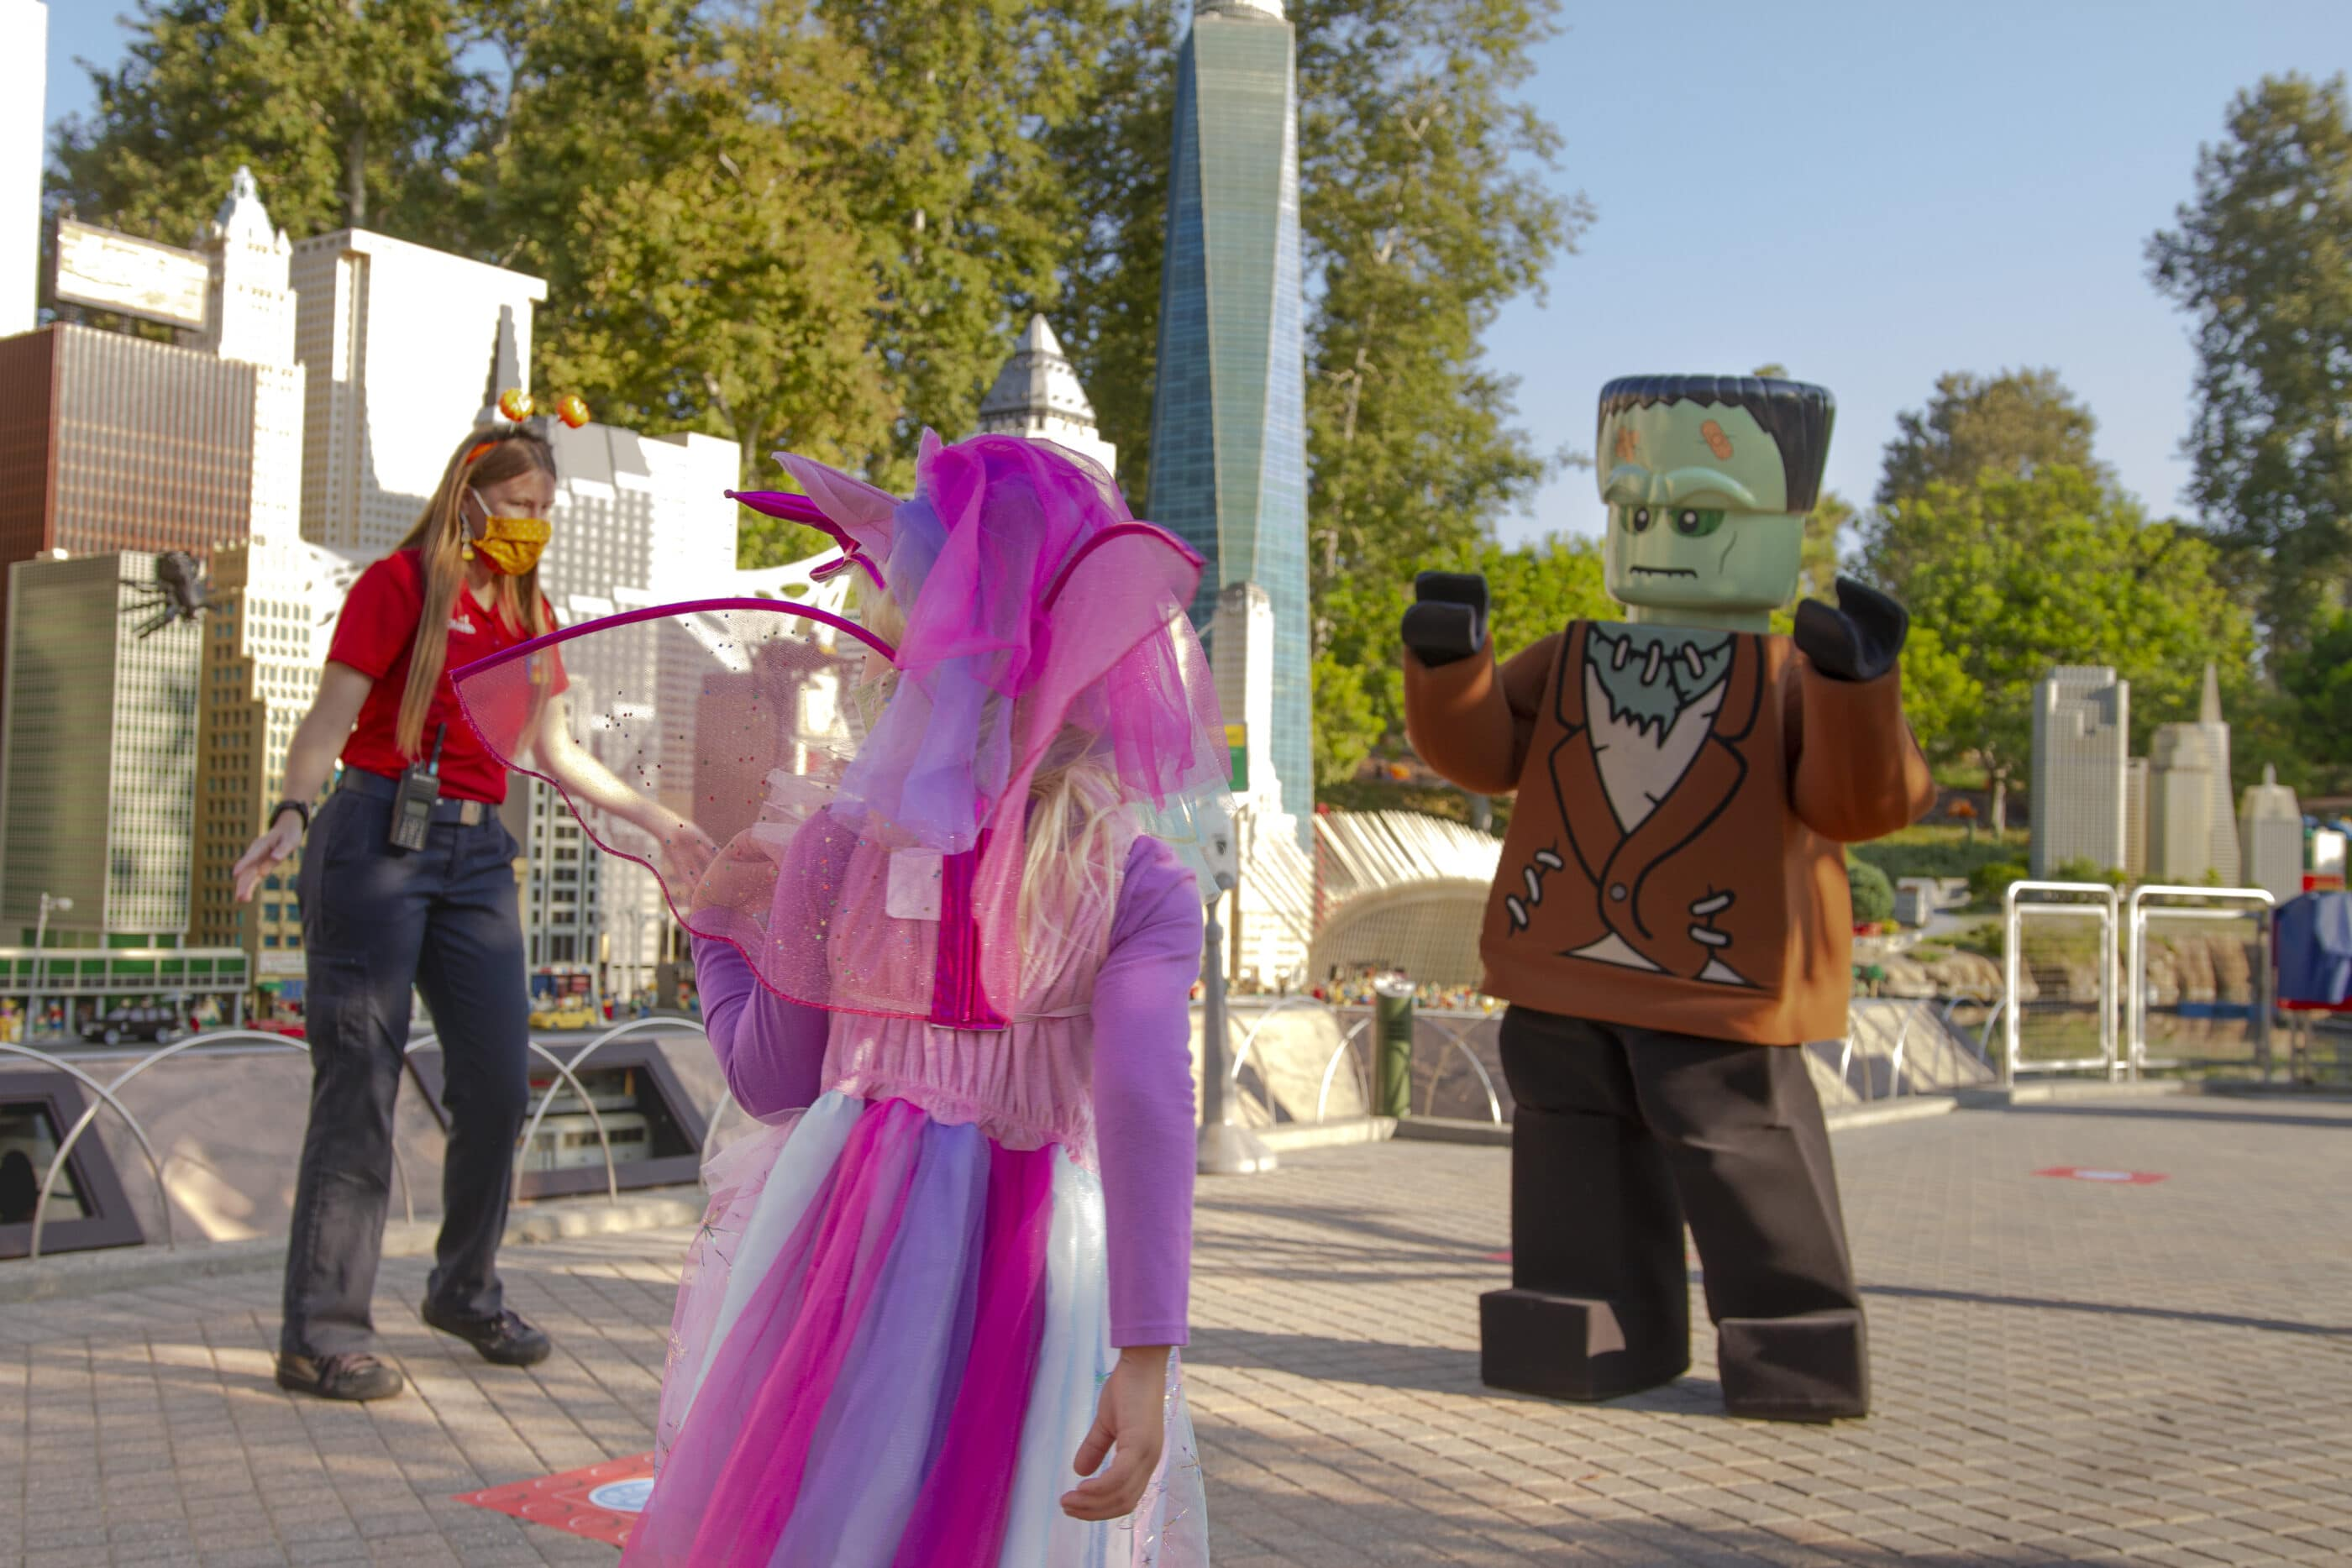 A girl in a costume walks up to a staff member dressed as Frankenstein in Miniland.